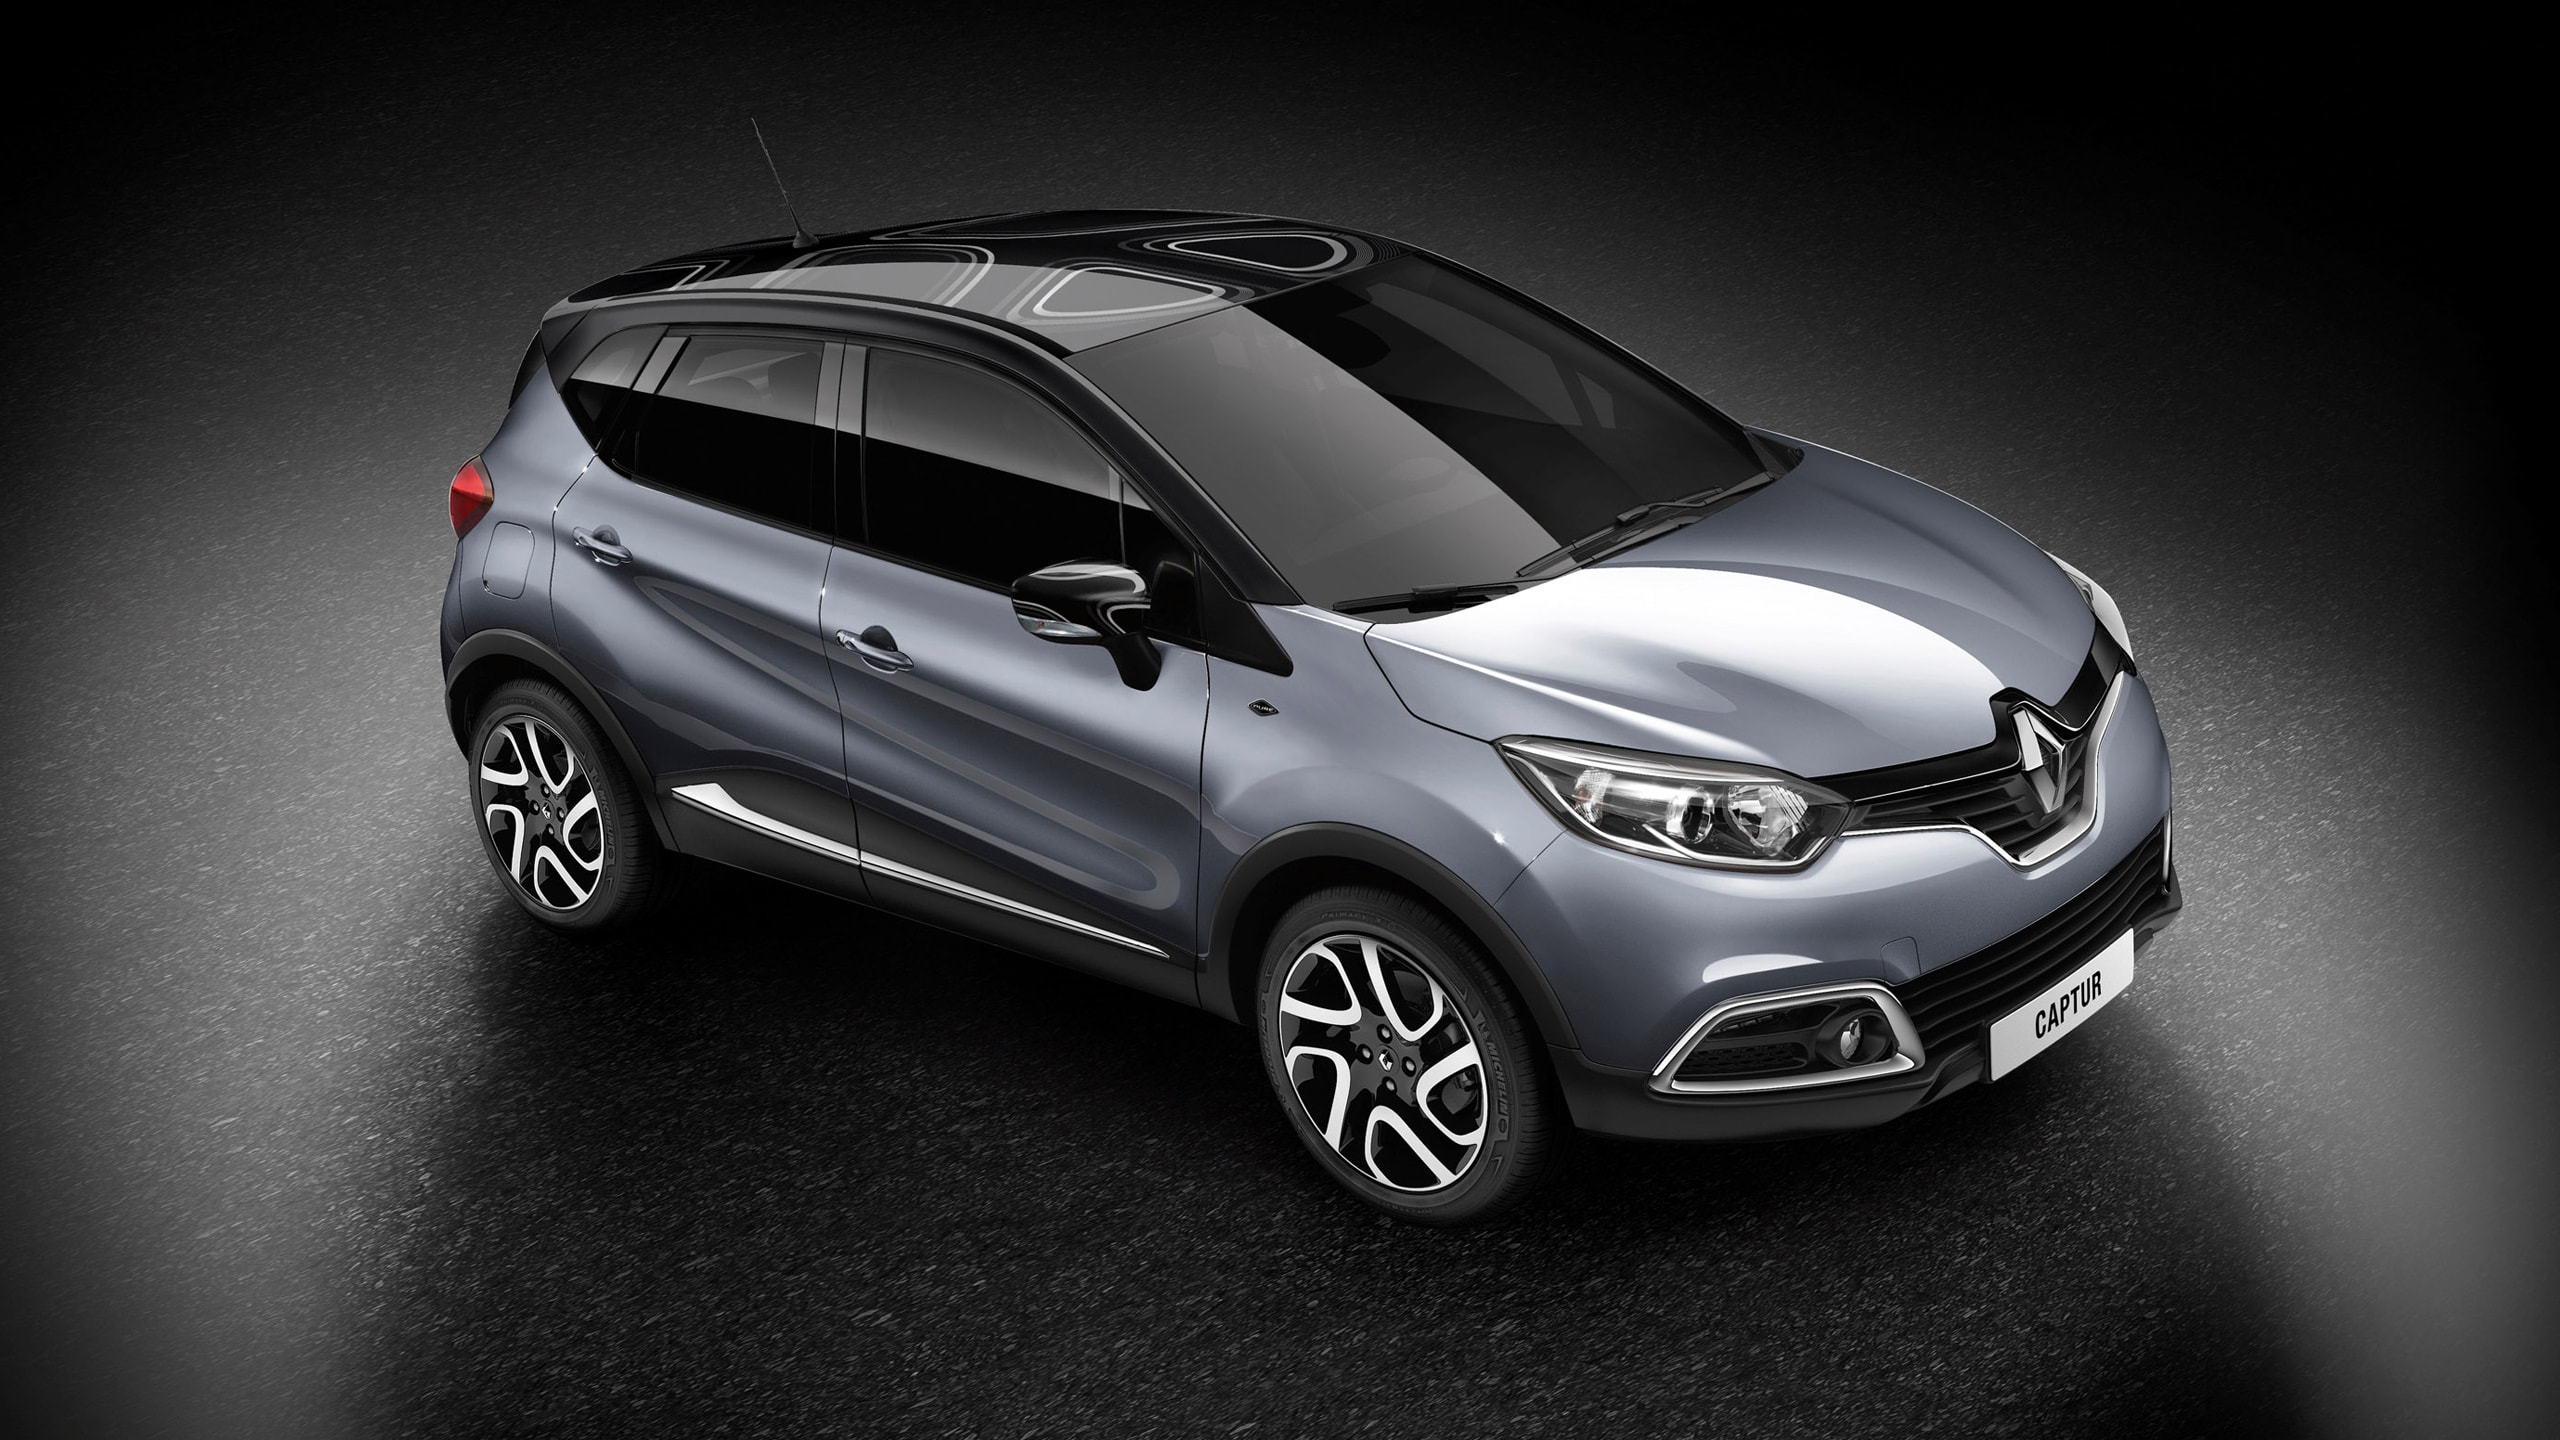 Renault Kaptur widescreen wallpapers